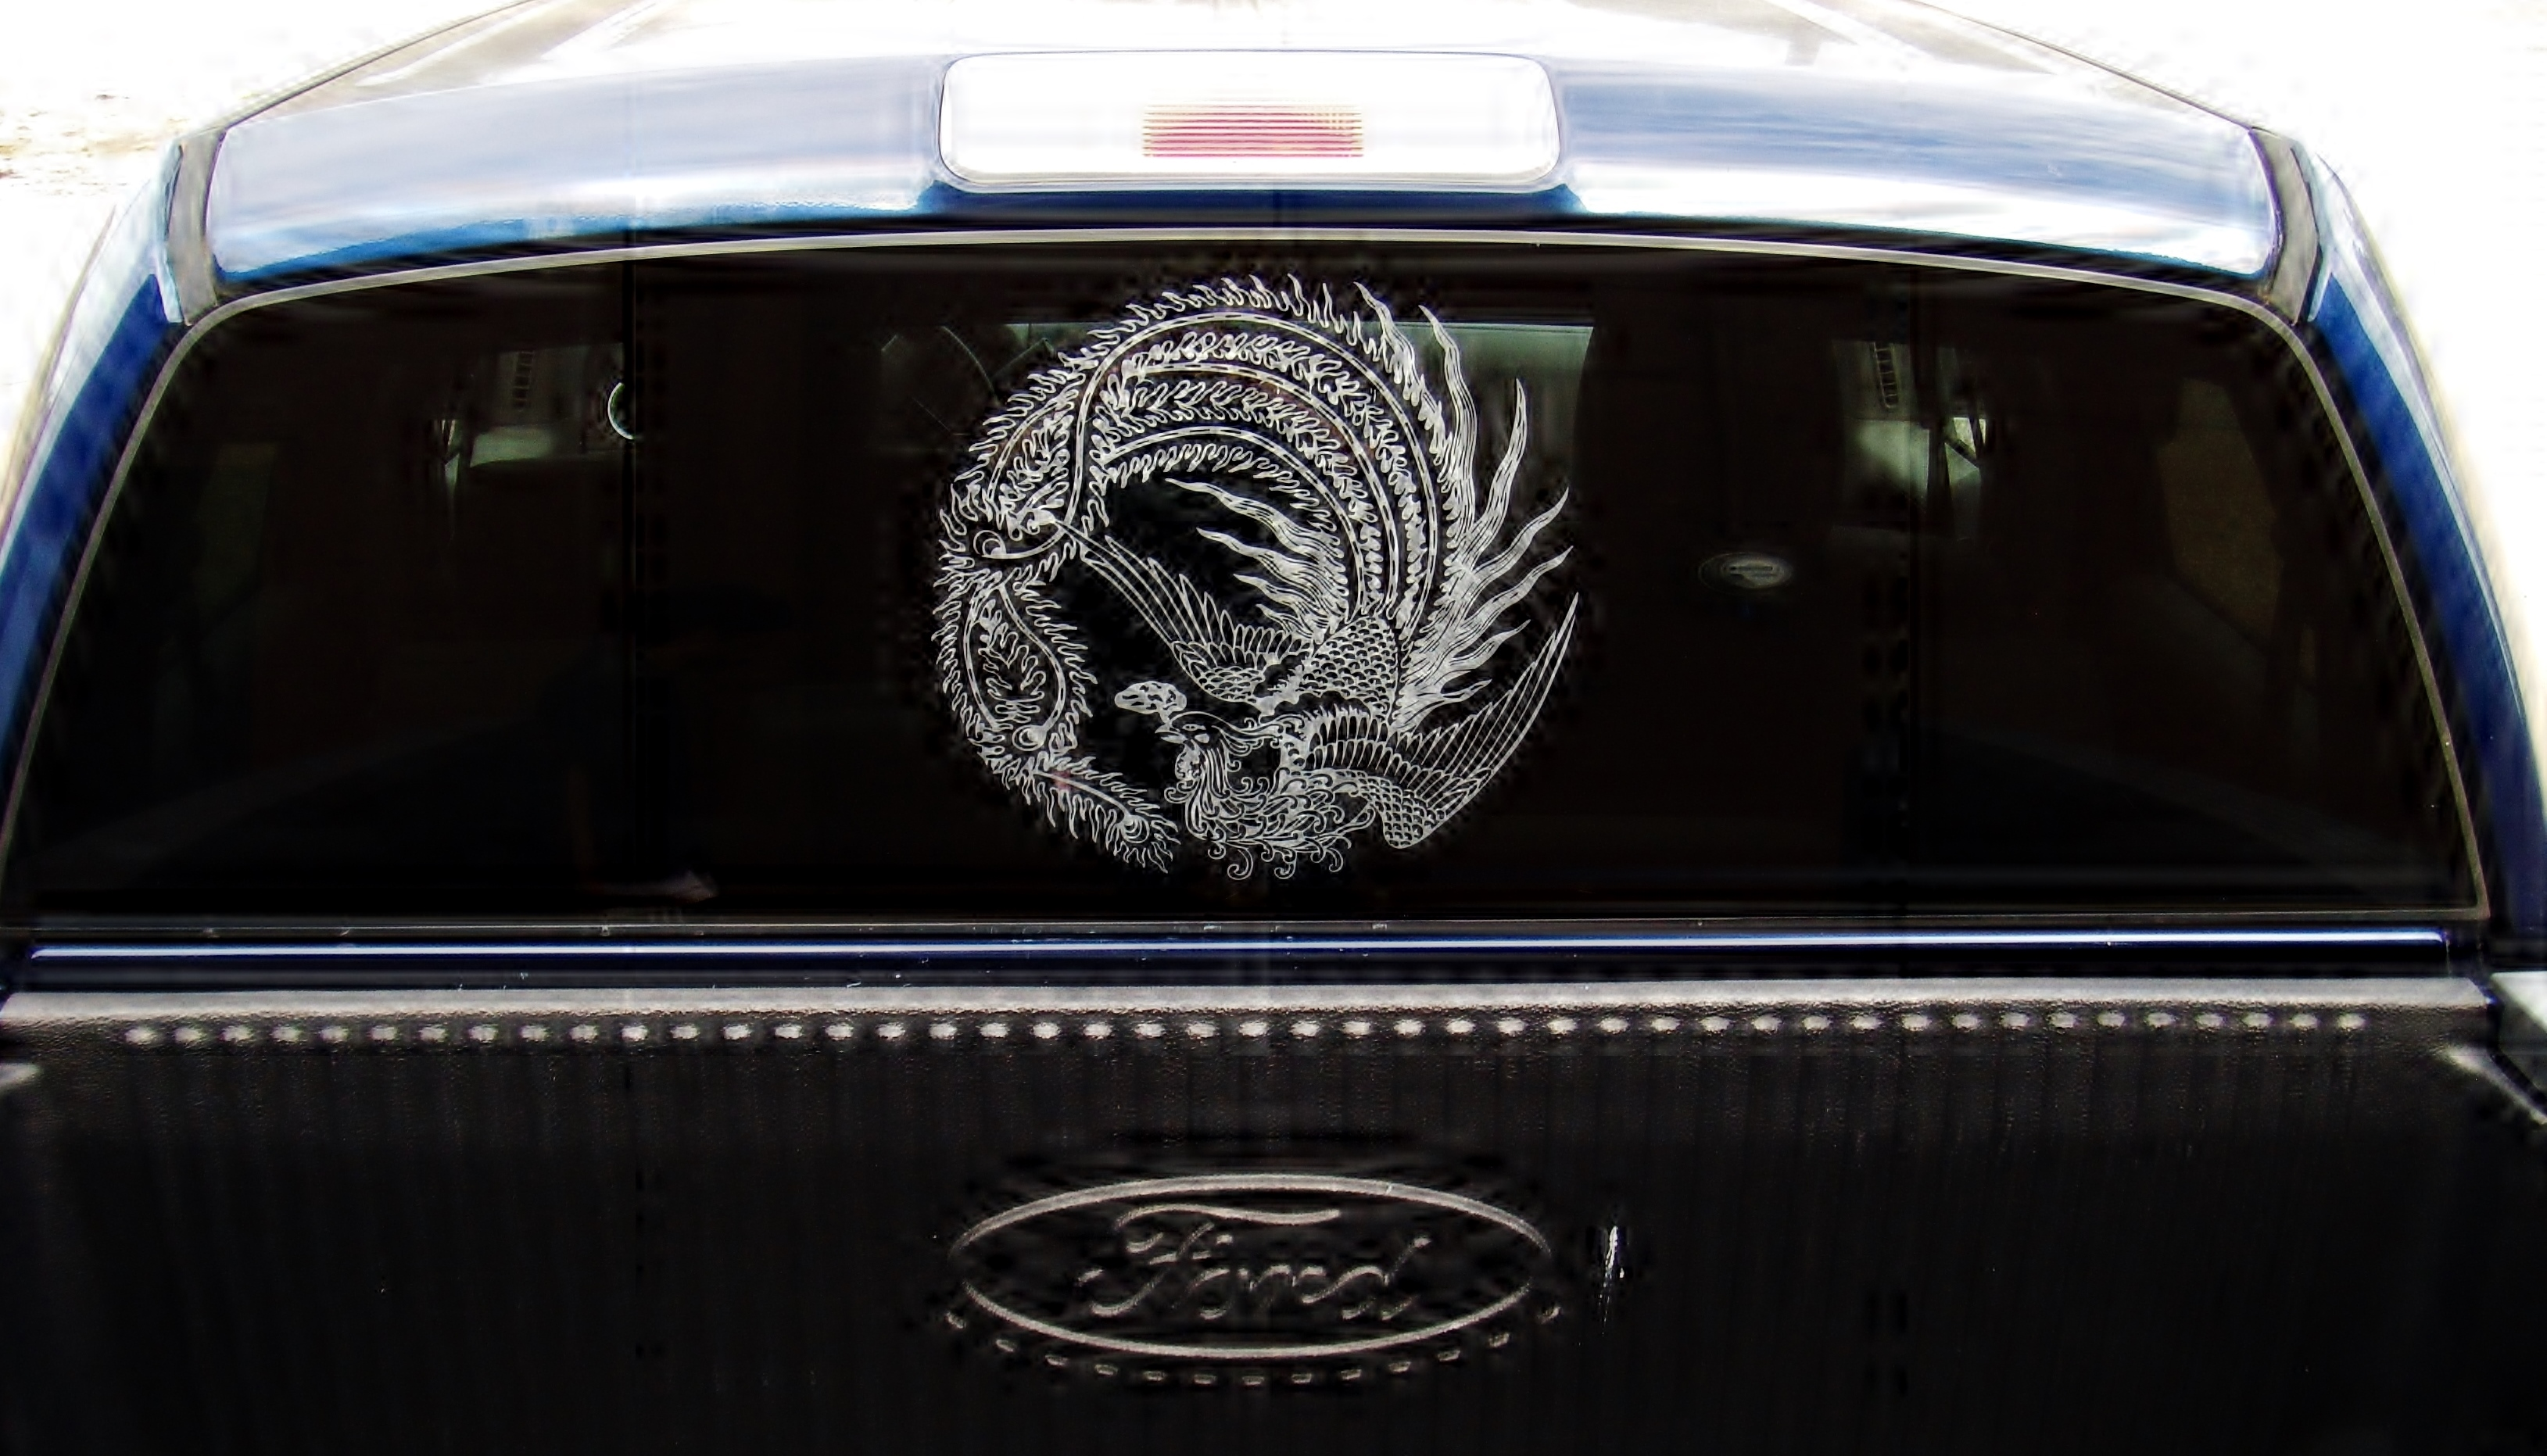 Decorative Etched Applications